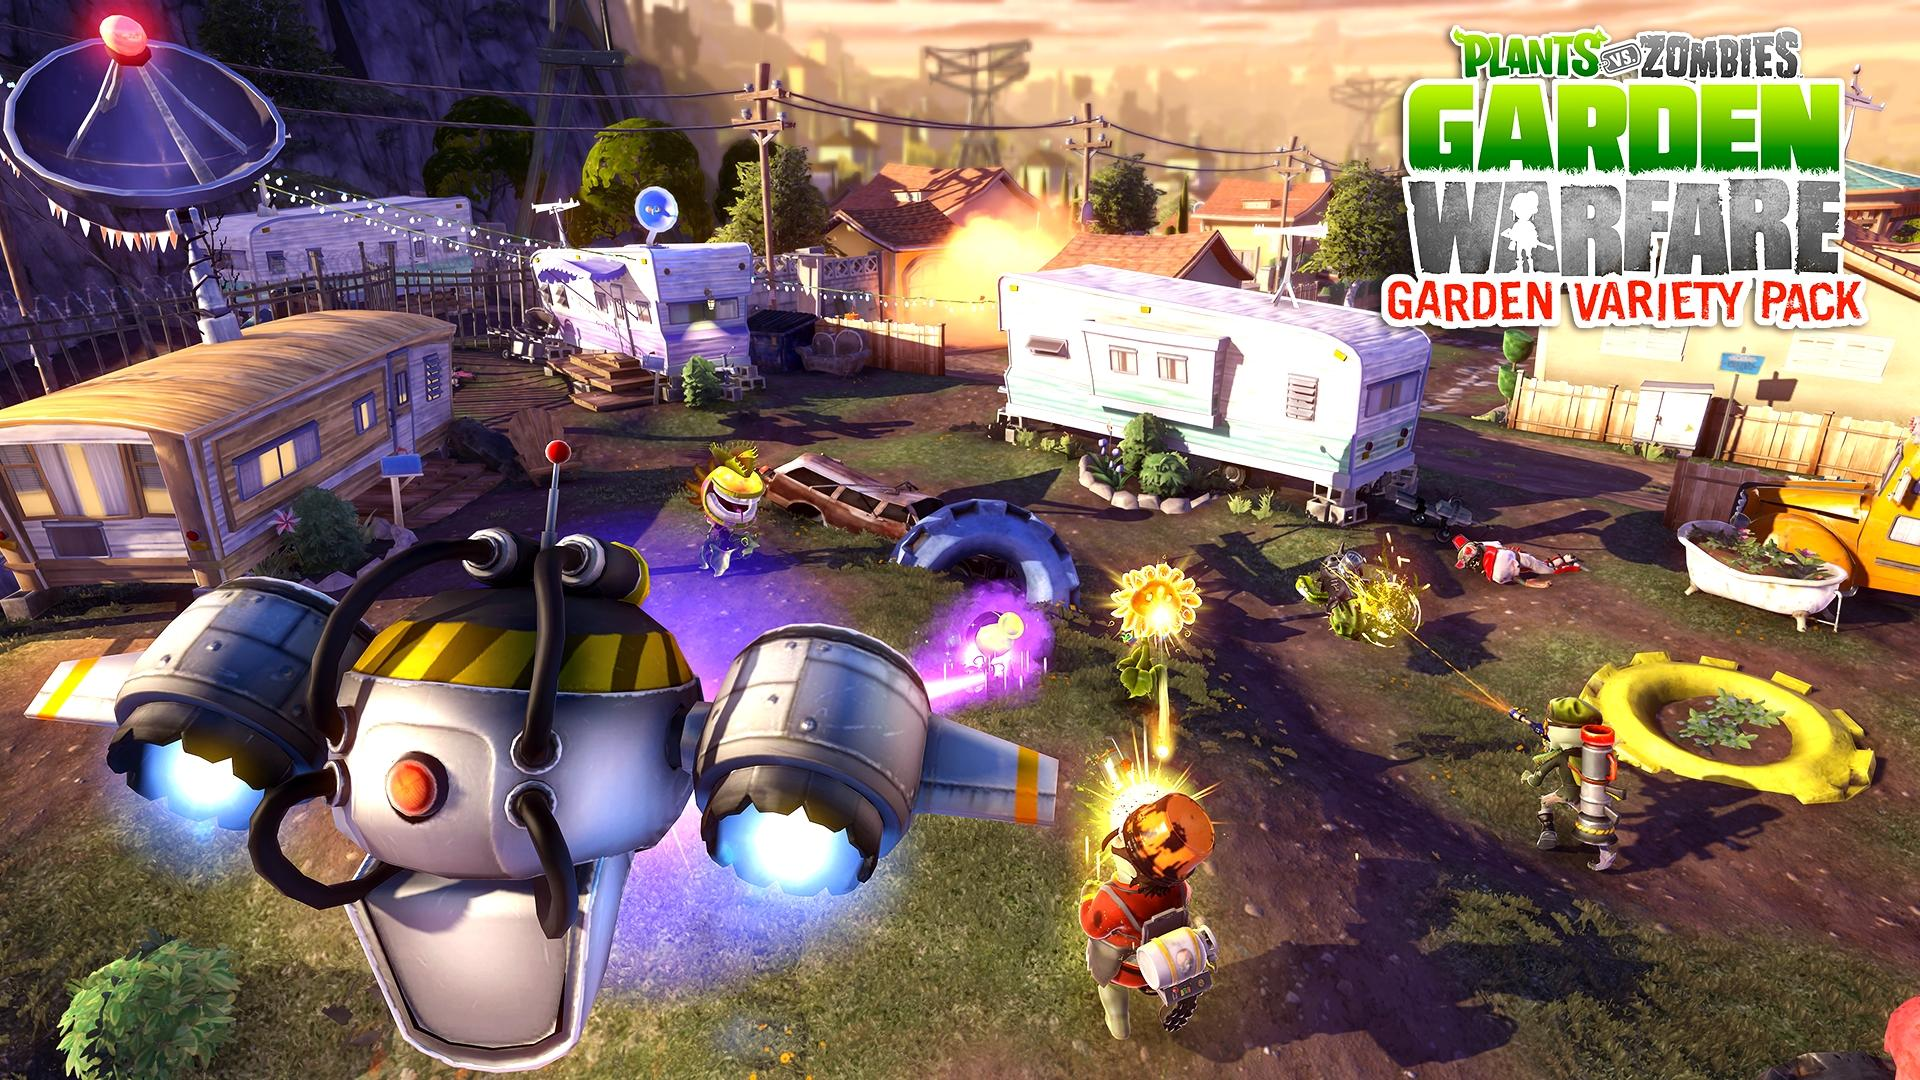 Plants vs zombies garden warfare due for free dlc this for Plante vs zombie garden warfare 2